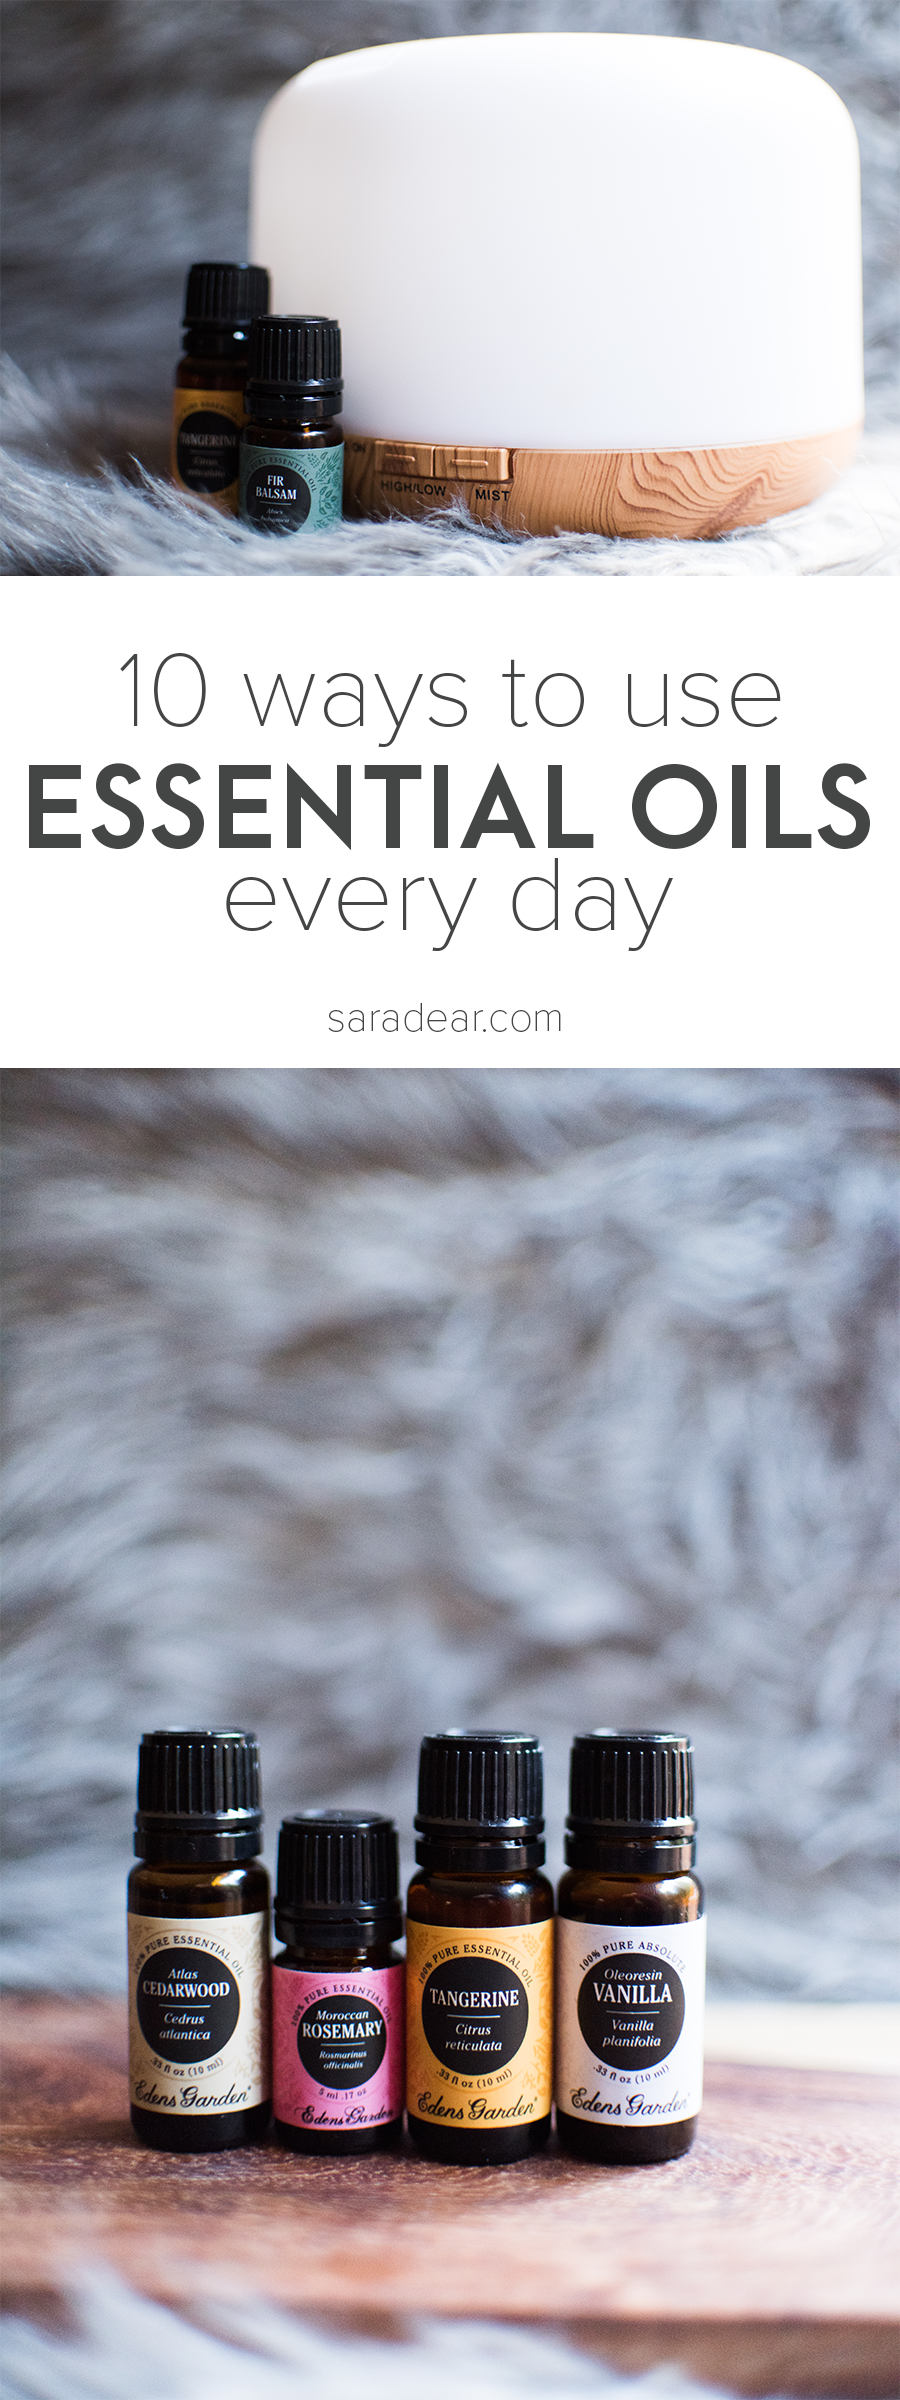 10 Ways To Use Essential Oils Every Day.png